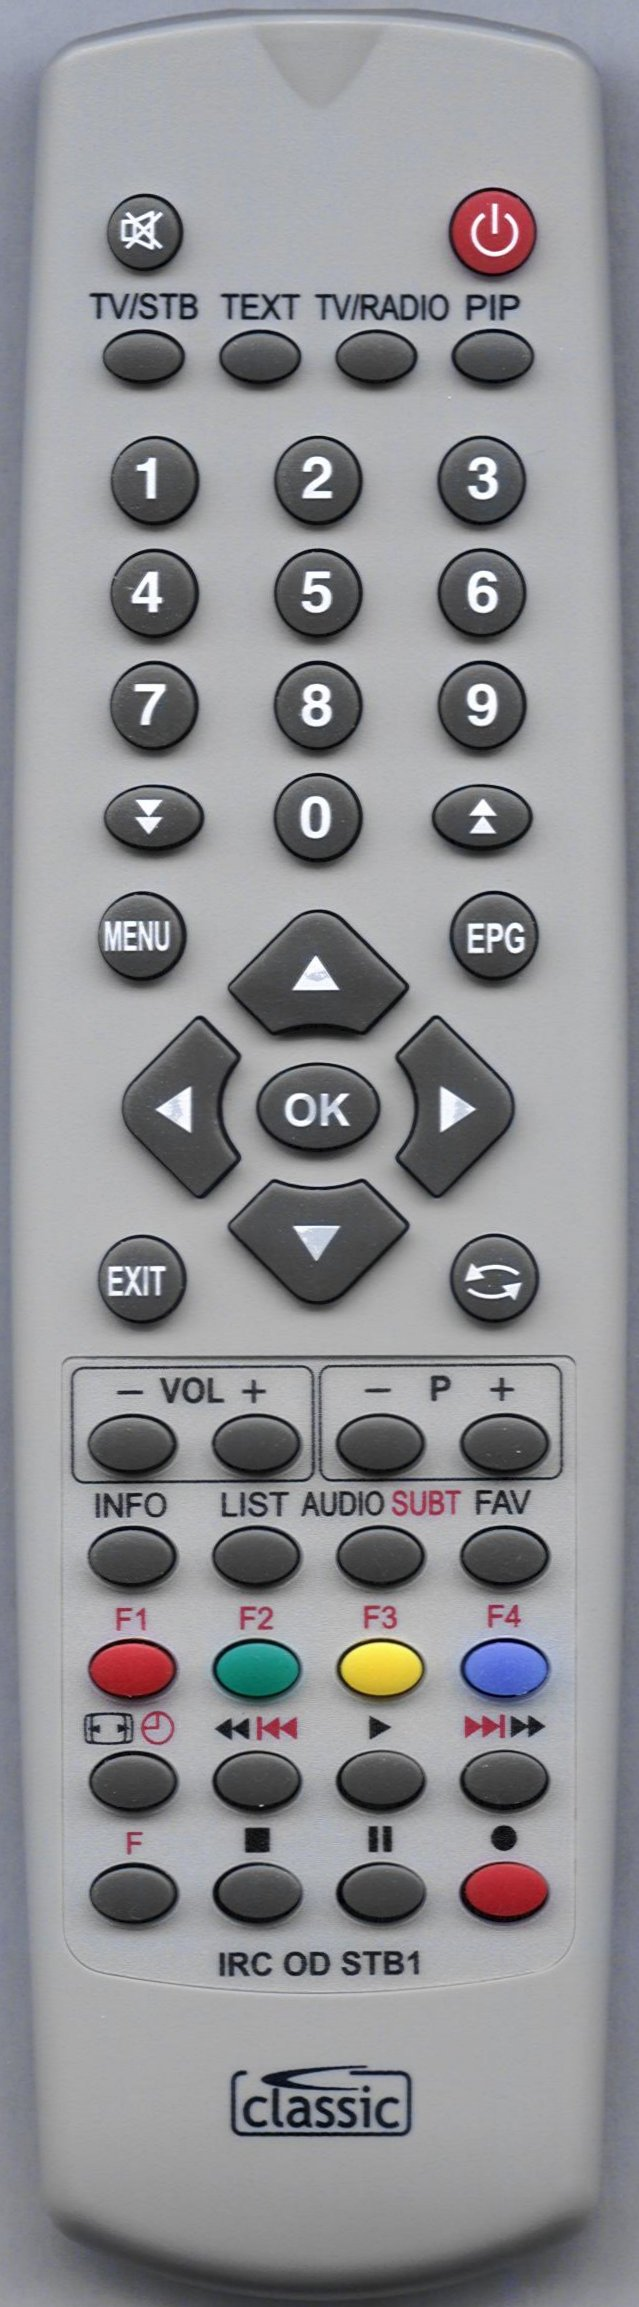 YOUVIEW DN371T Remote Control